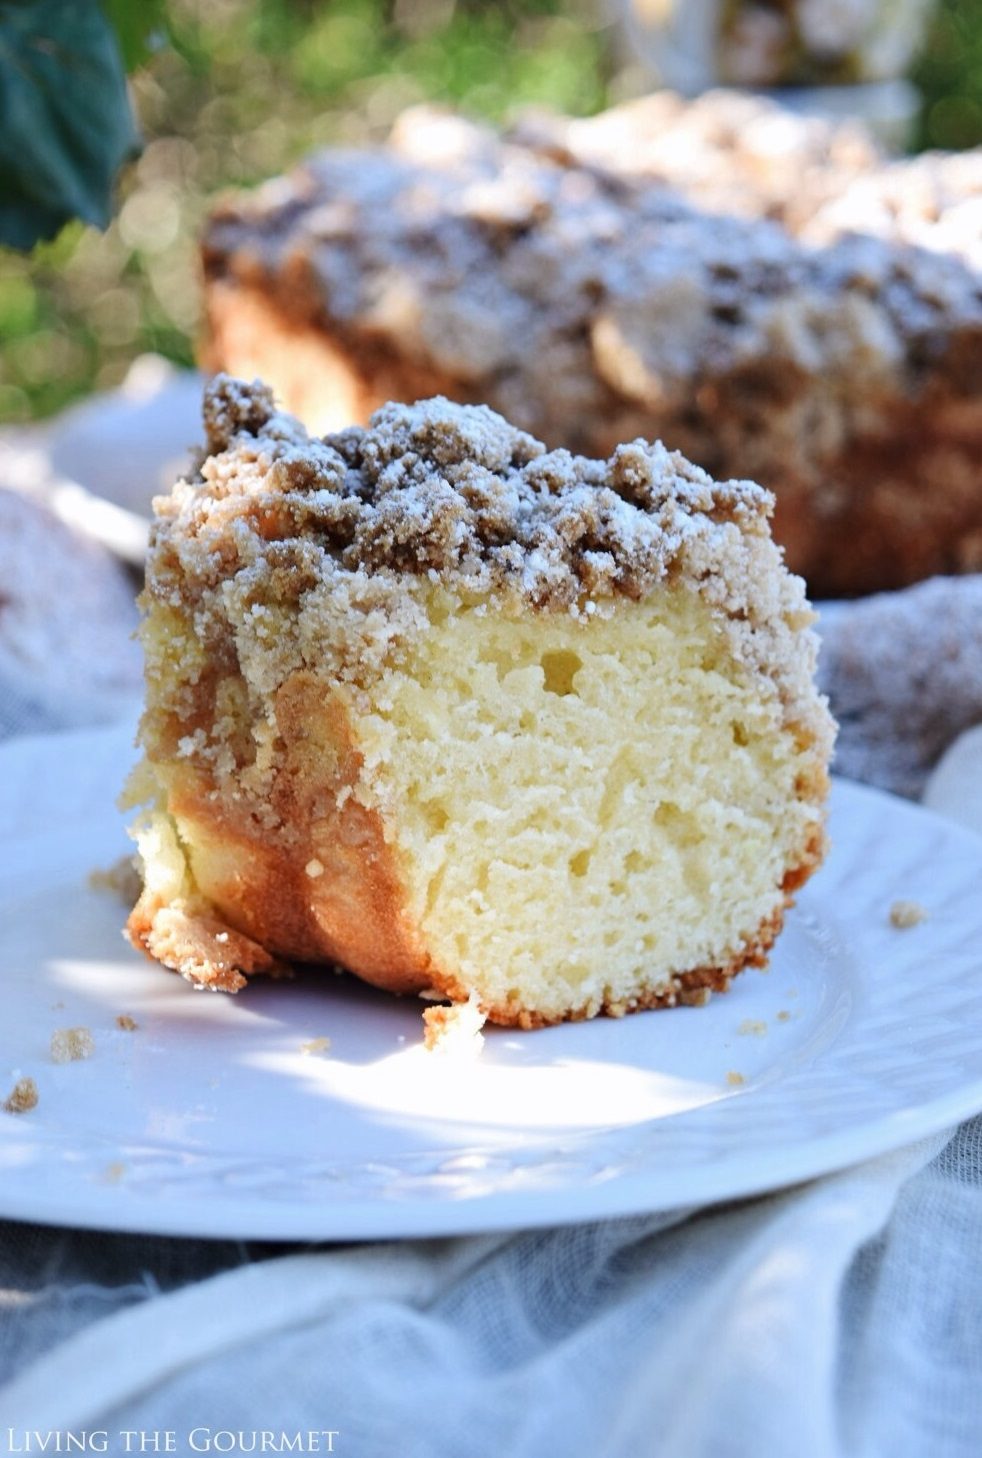 Living the Gourmet: New York Style Crumb Cake | #BundtBakers